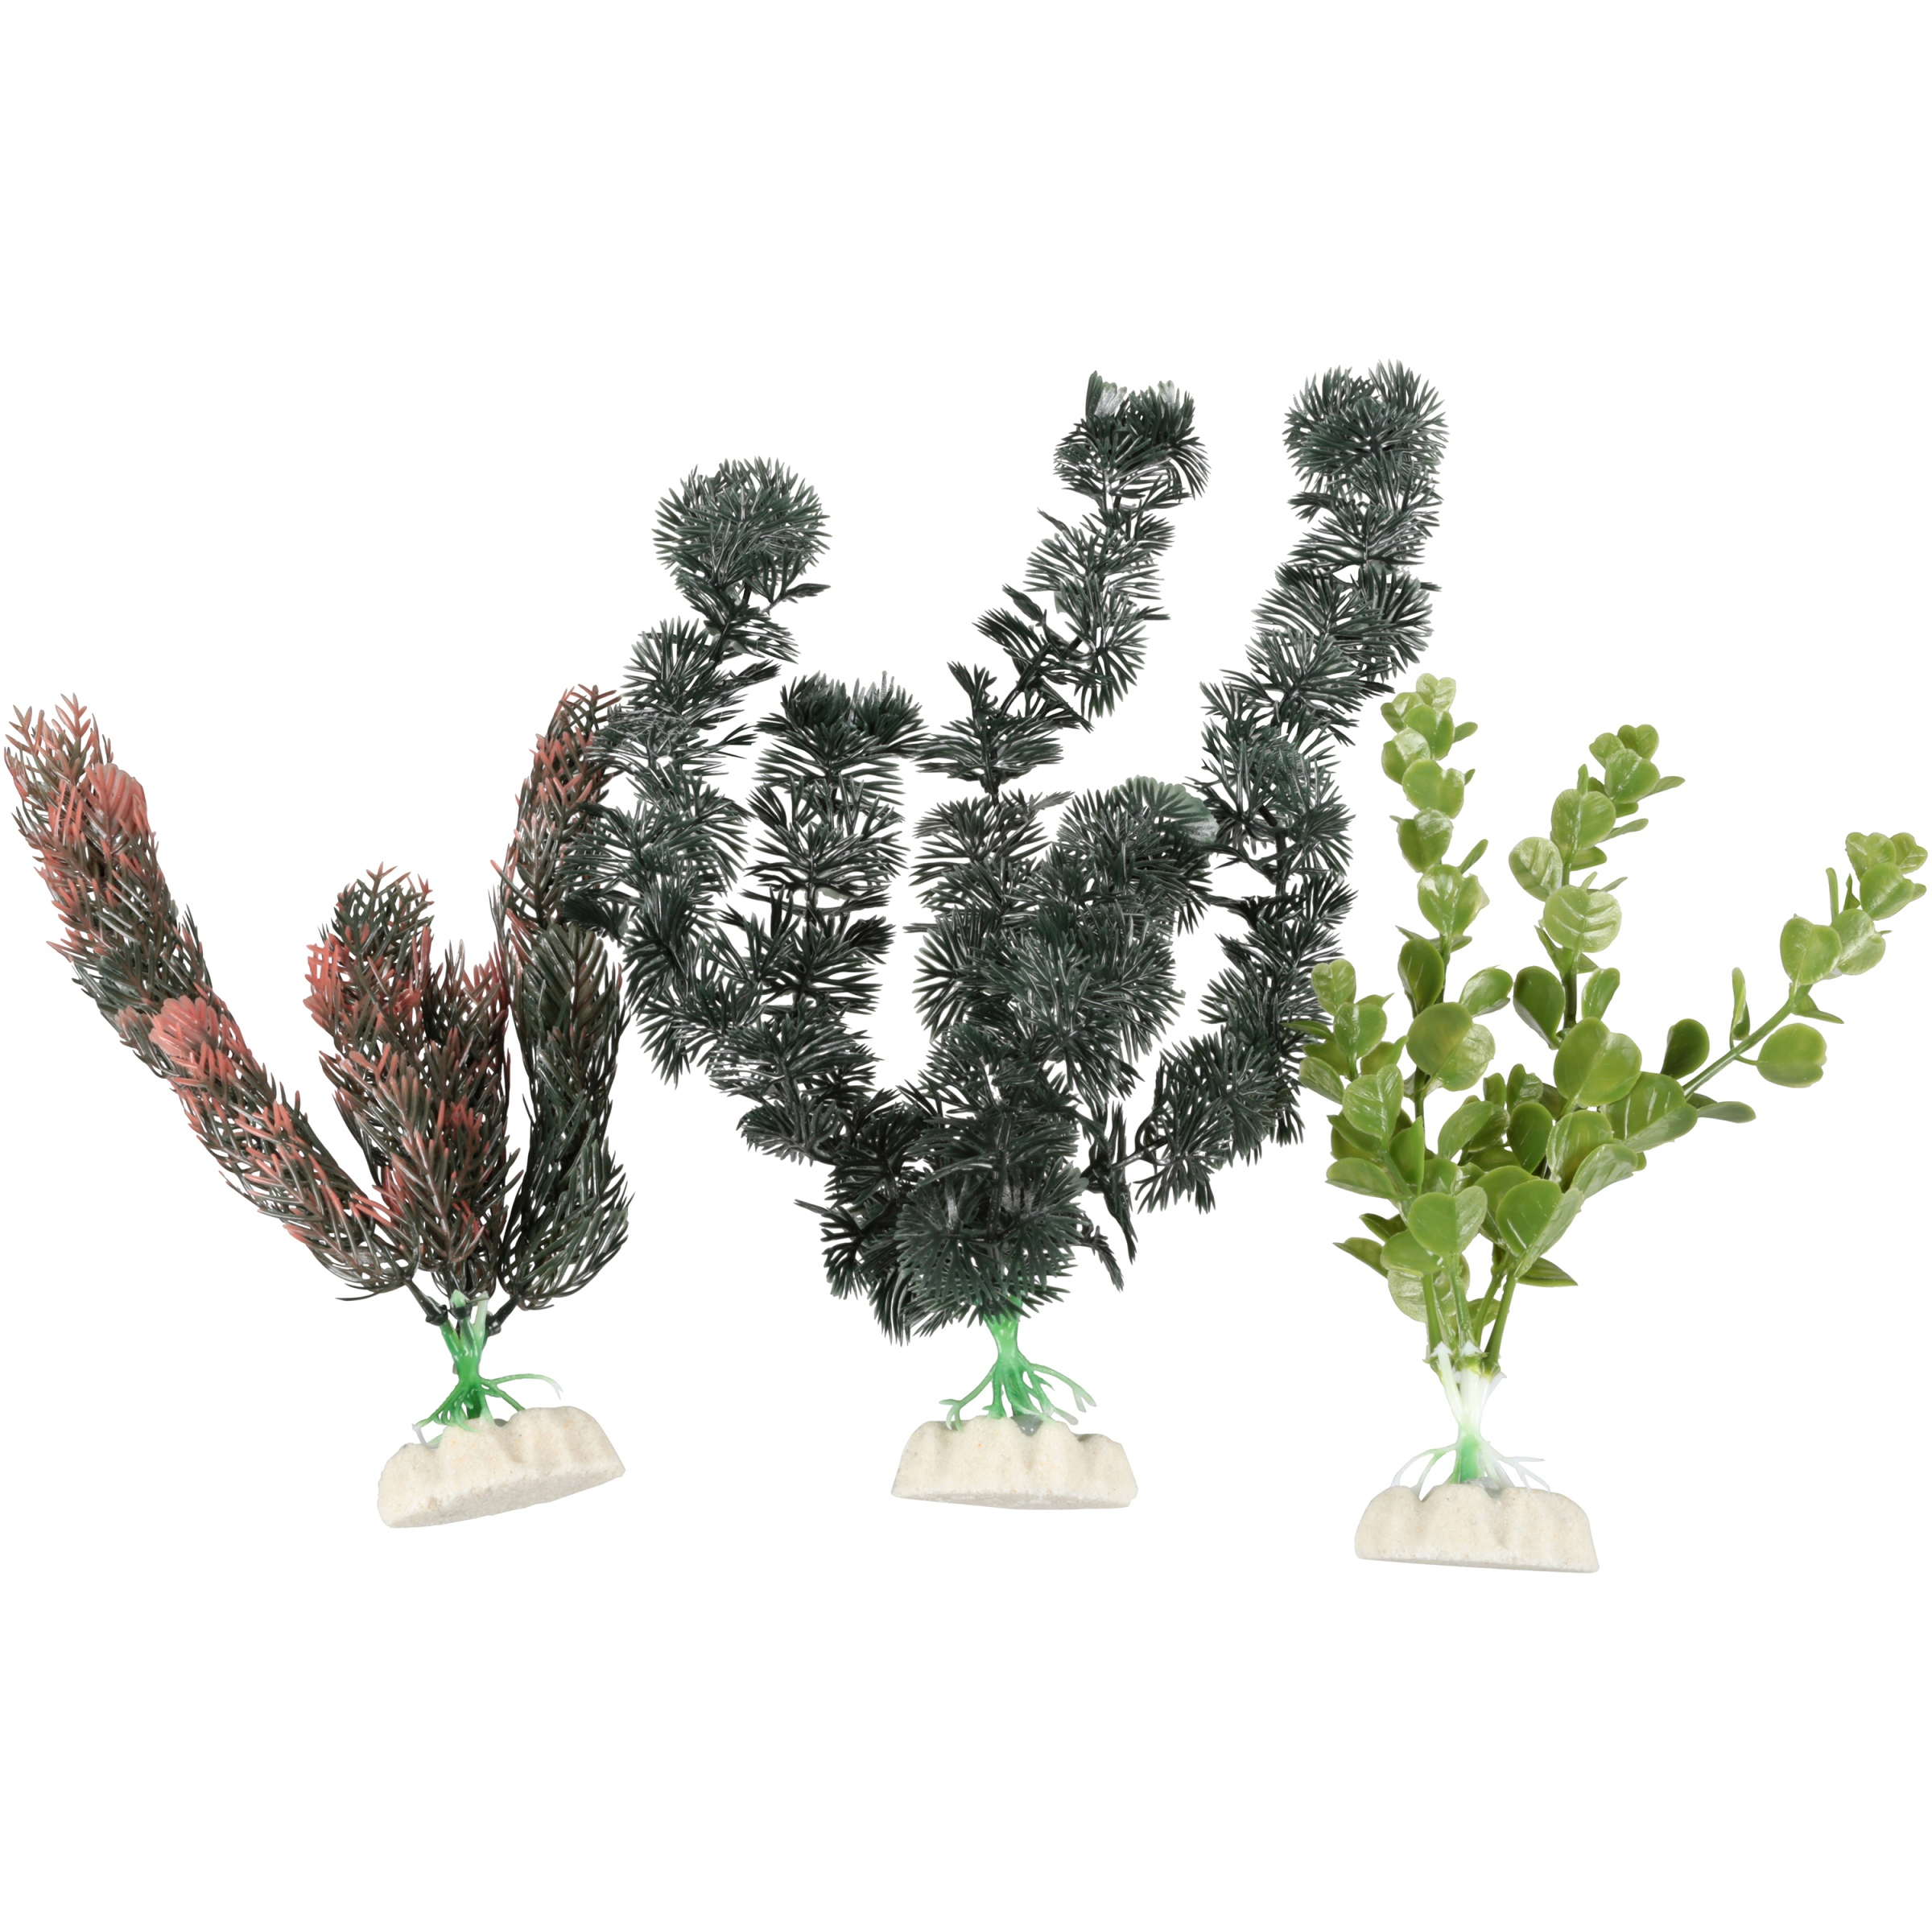 Aqua Culture Aquarium Plants 3-Piece Value Pack, 3-Pack by Wal-Mart Stores, Inc.